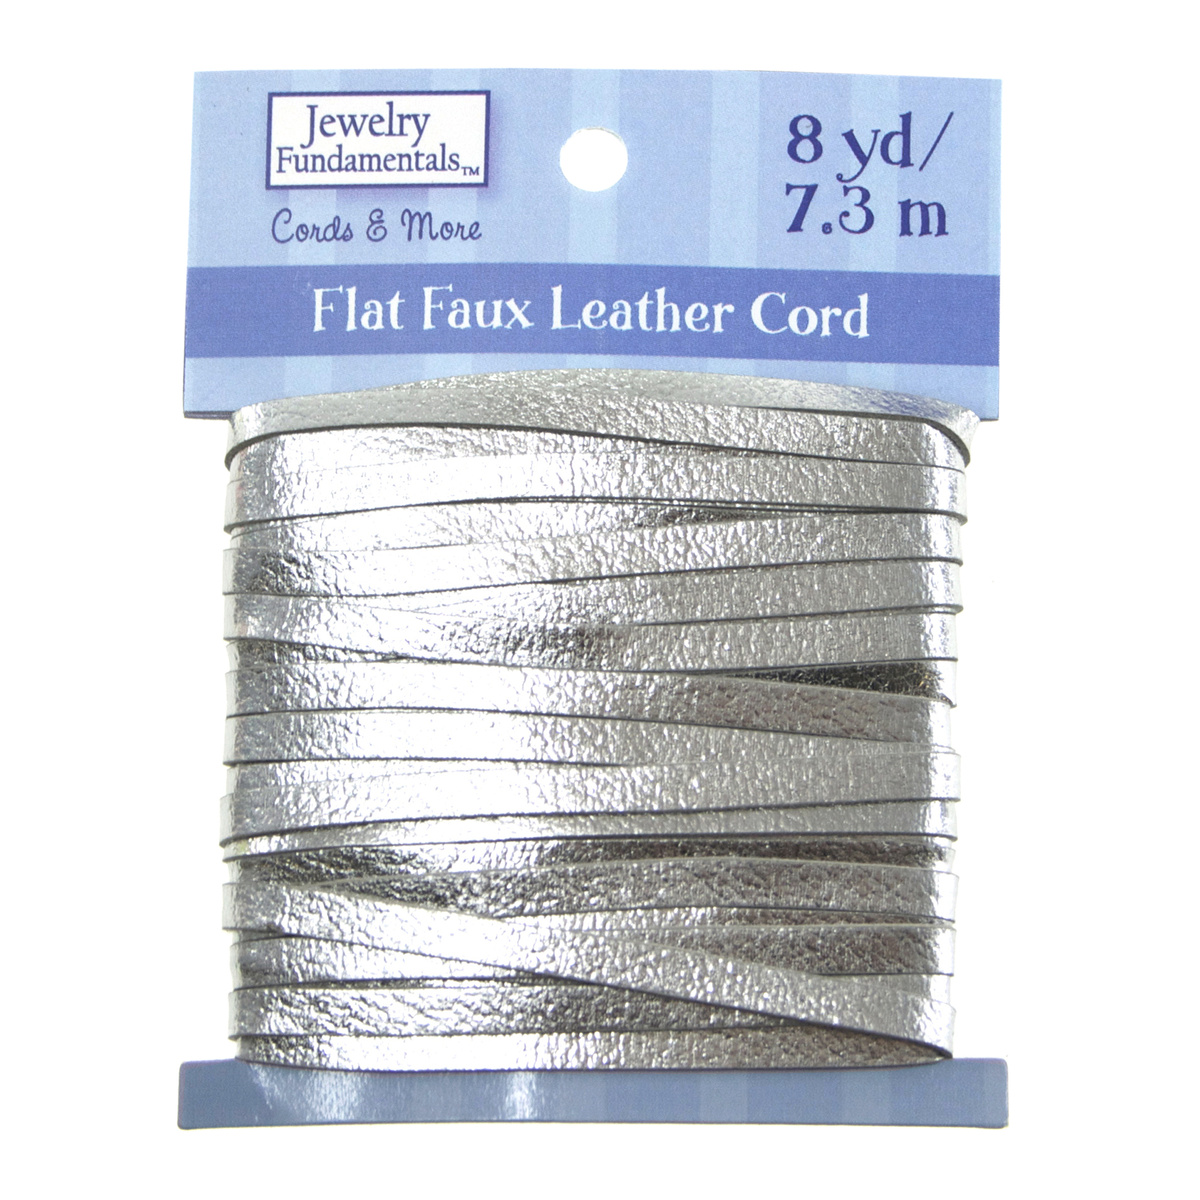 Jewelry Fundamentals Cords&More Flat Faux Leather Cord-Silver Met.